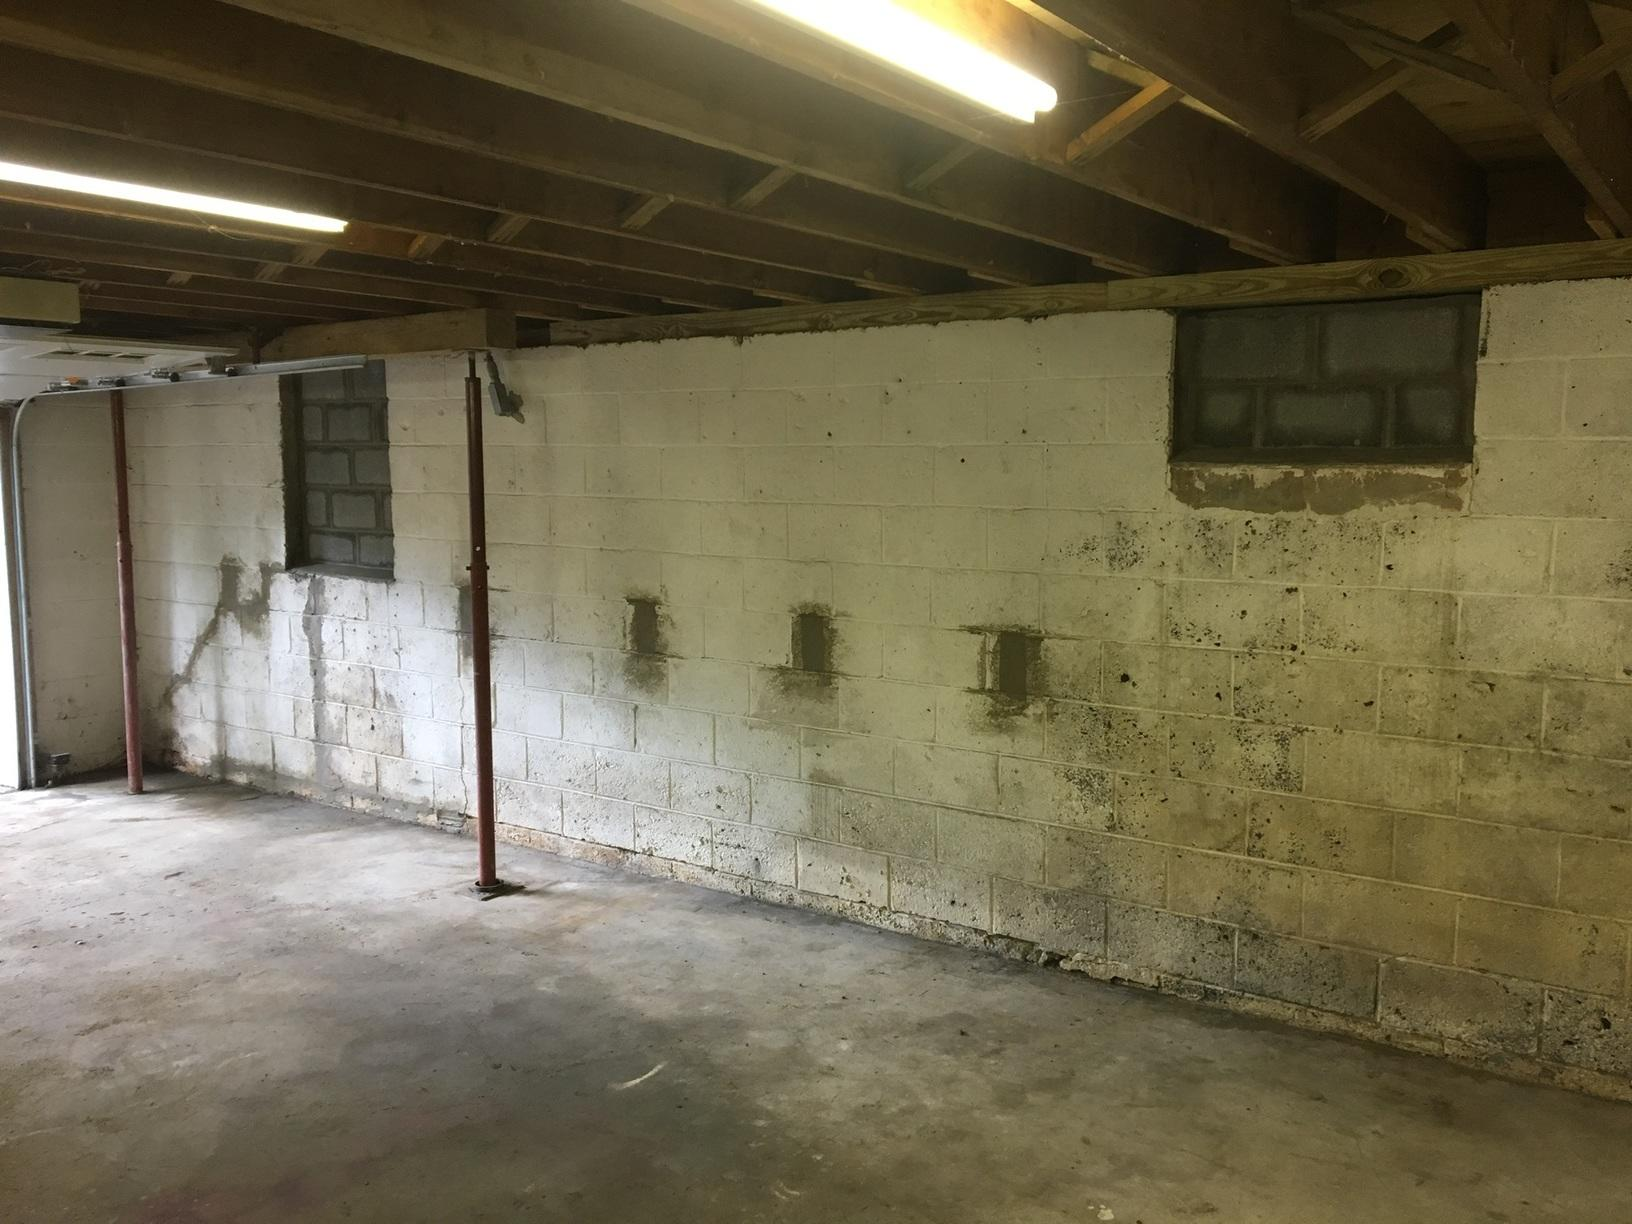 Our homeowner now has a functioning foundation/garage that can be used as a shop for storage or to park cars.